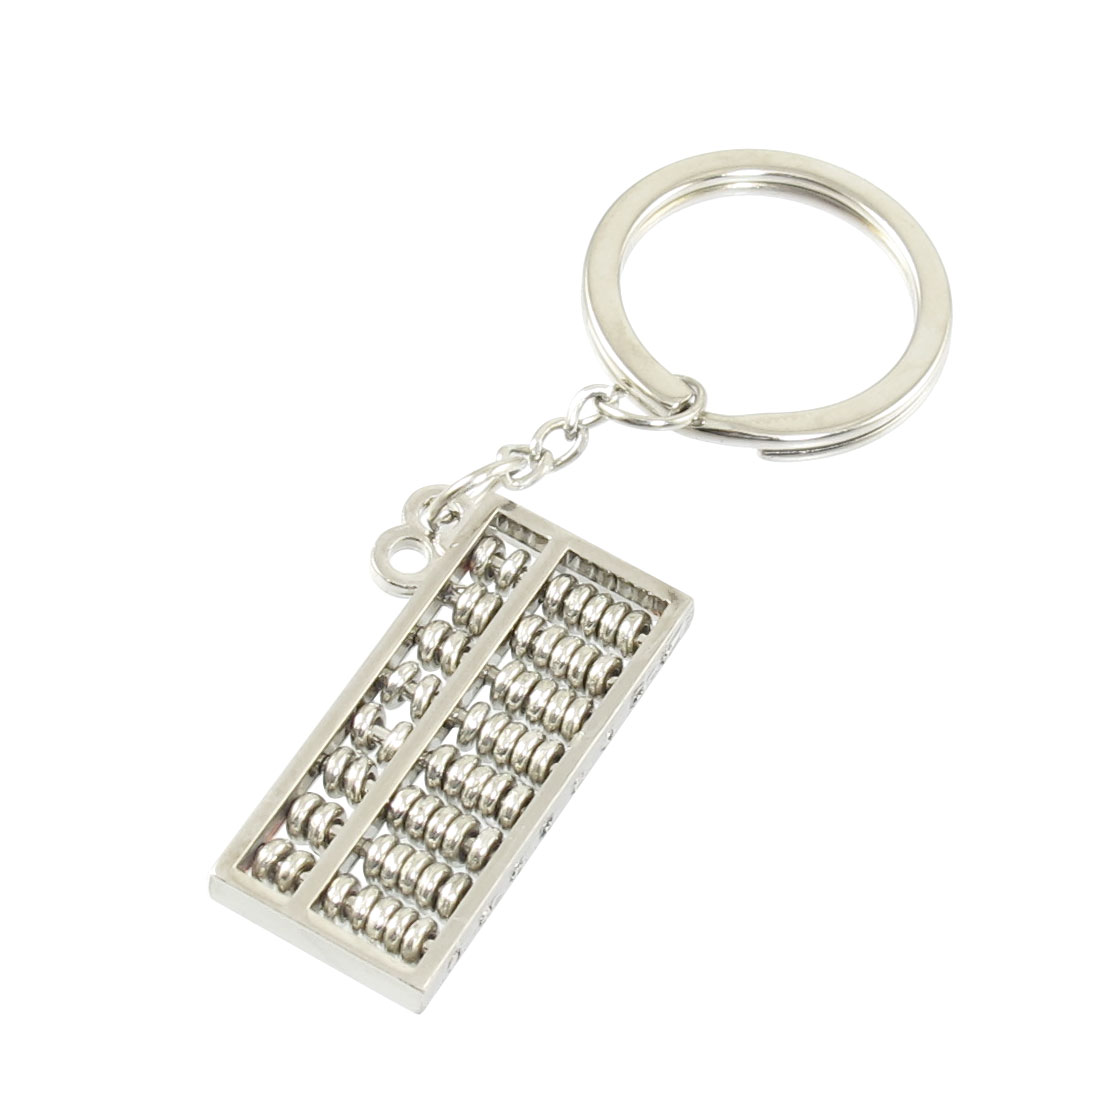 Silver Tone Micro Abacus Shaped Pendants Keychain Ring Hanger Decor